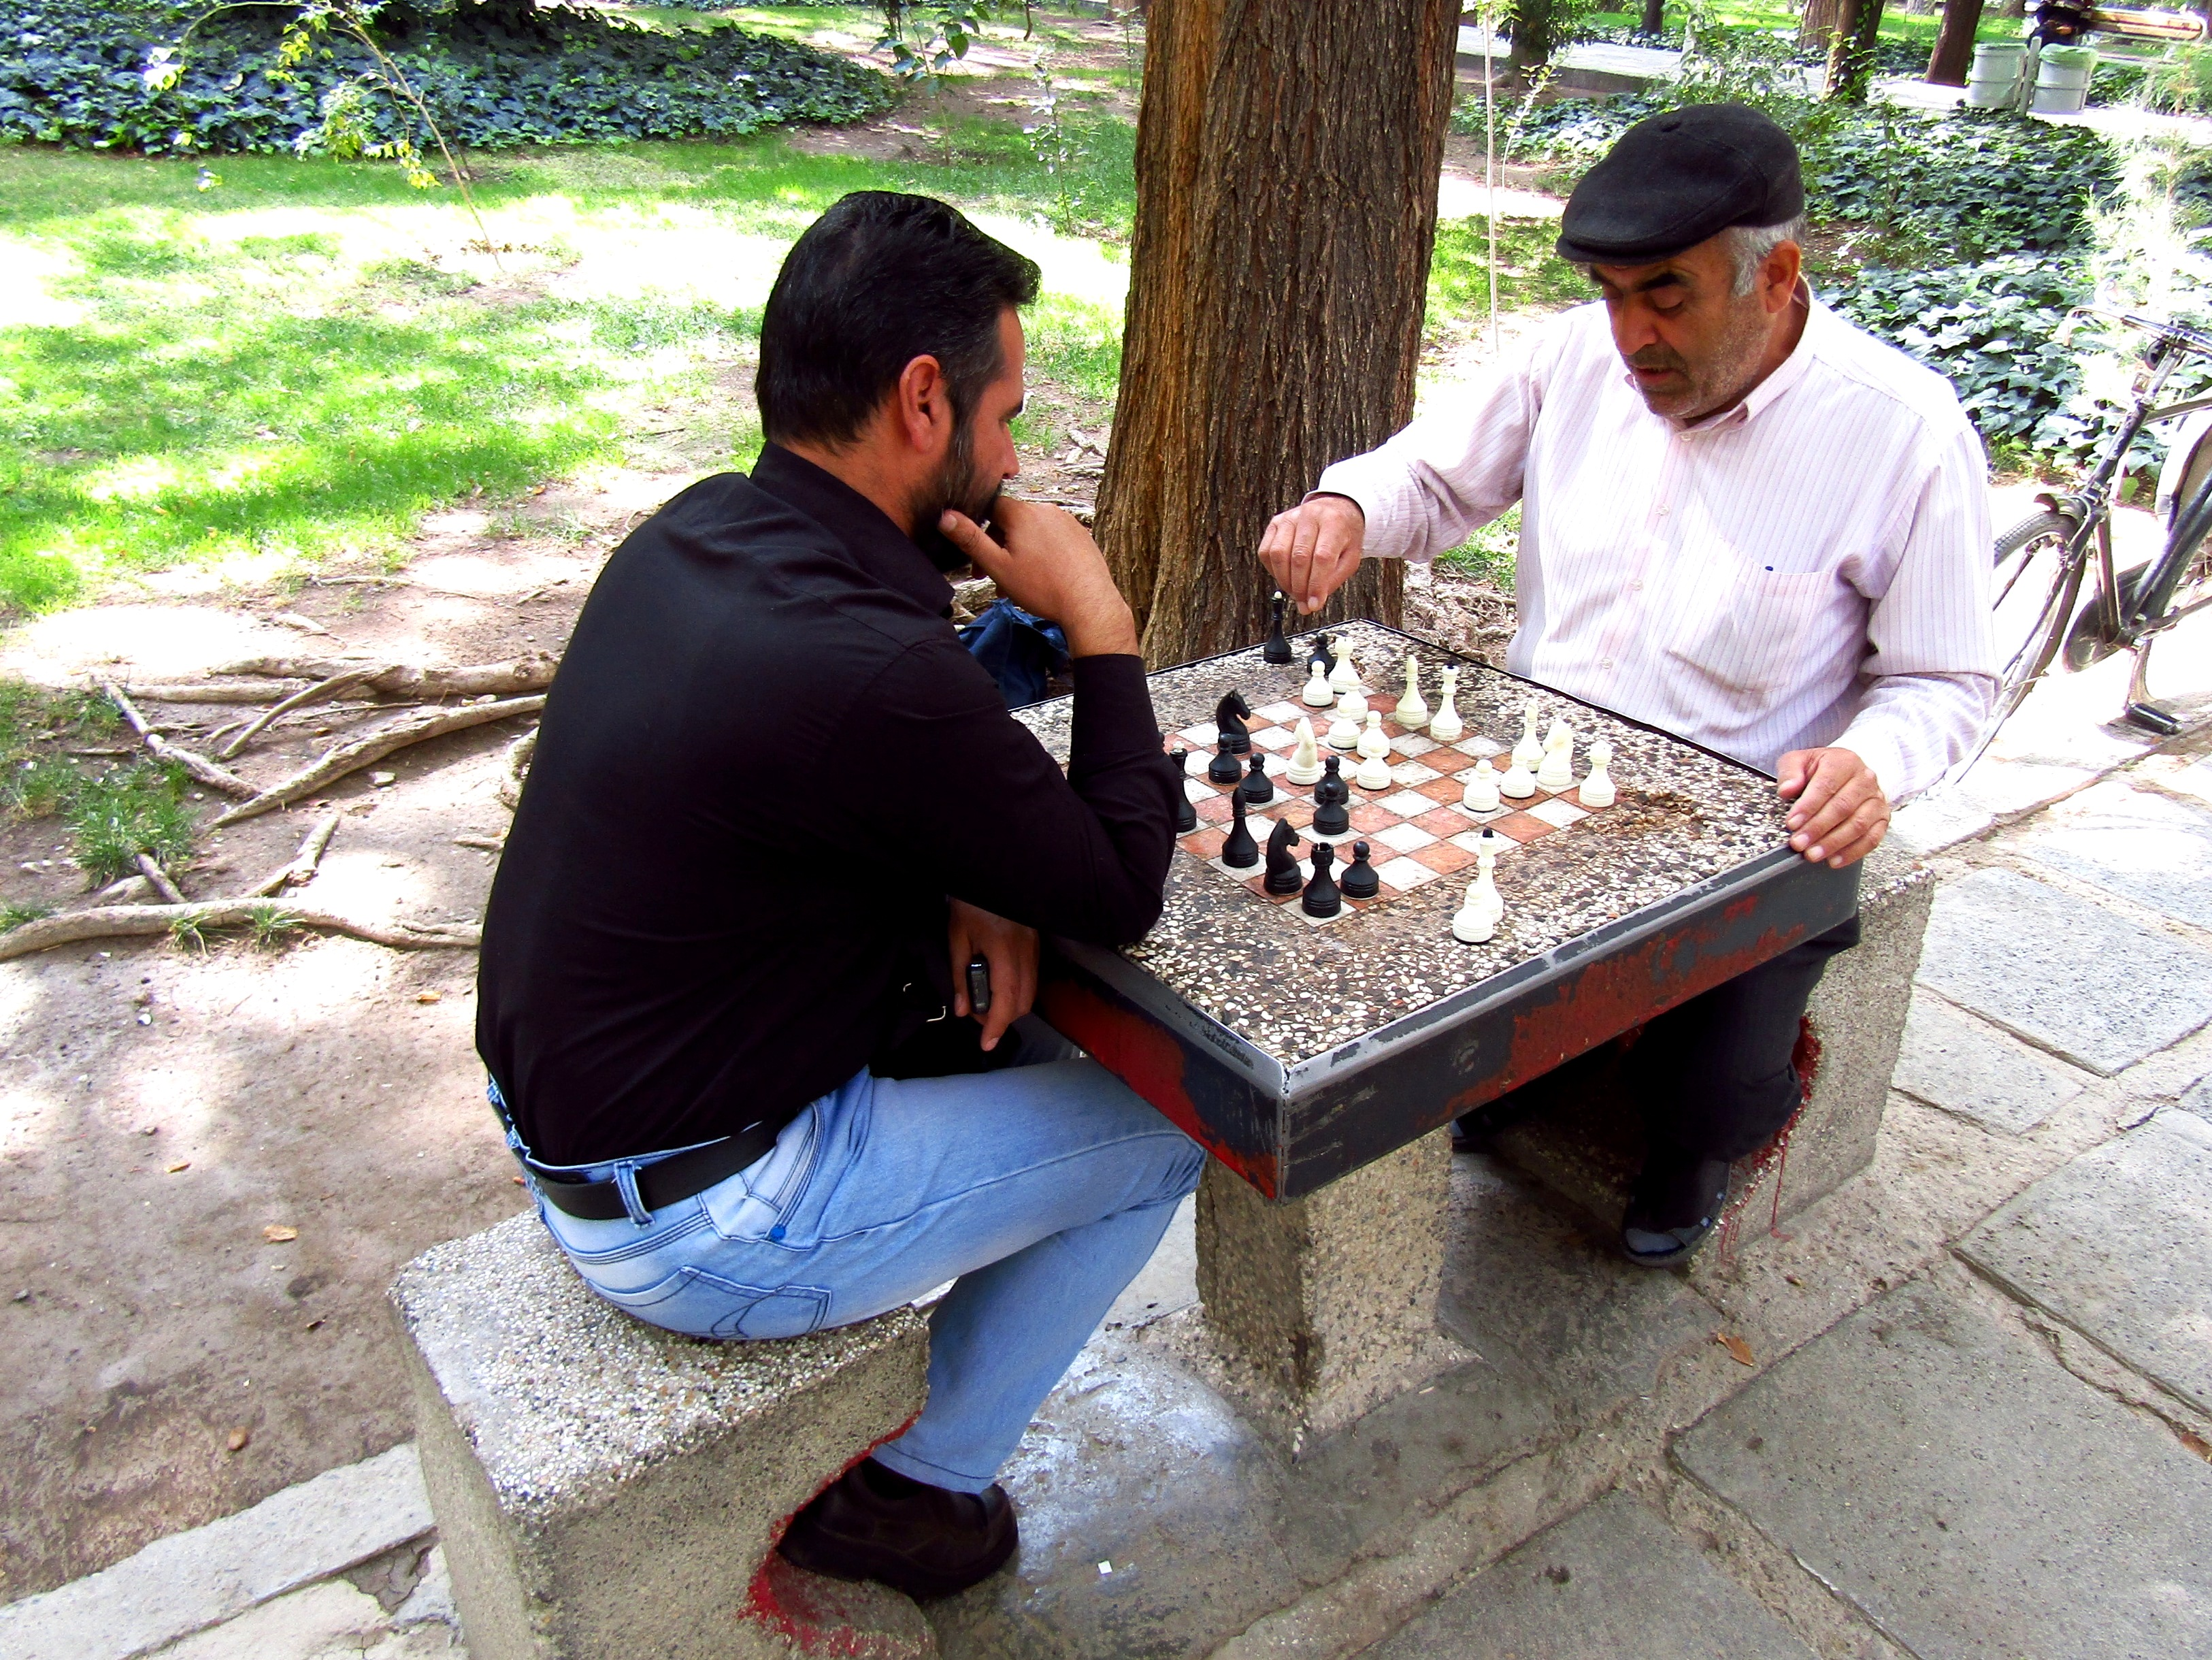 Watching locals engaged in a game of chess